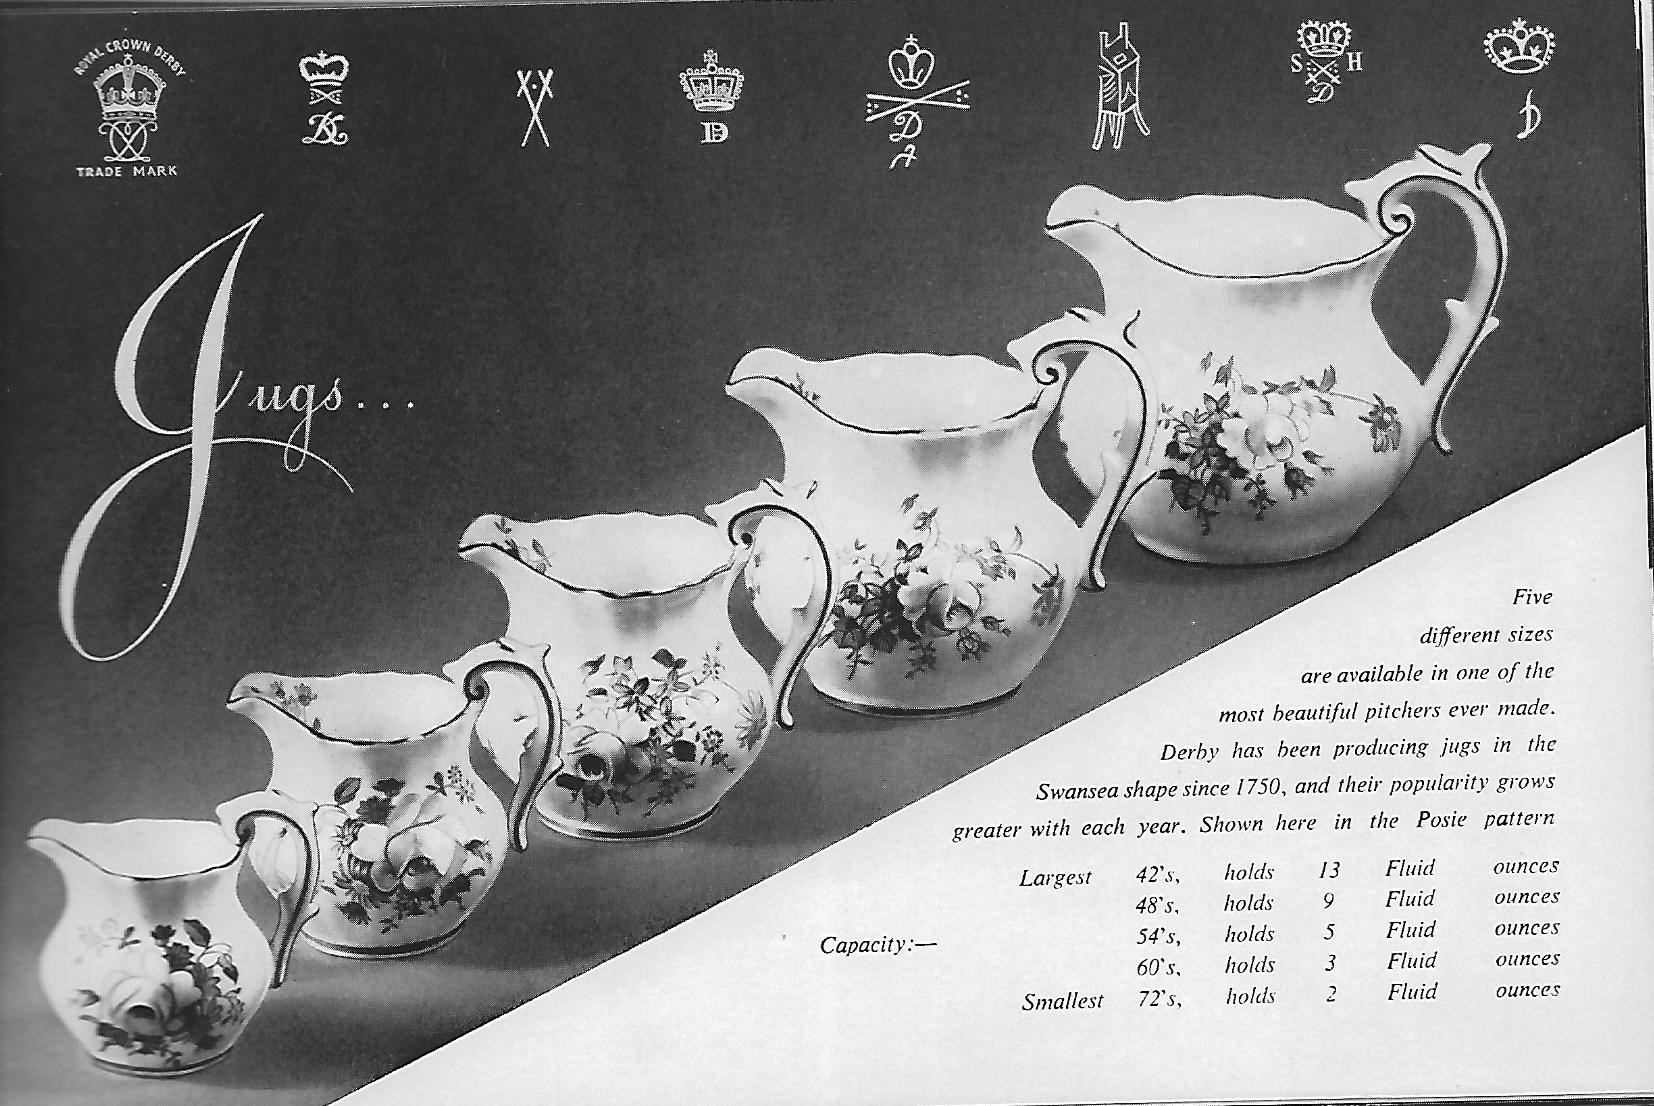 royal-crown-derby-united-states-illustrated-catalogue-1959-derby-posies-jugs